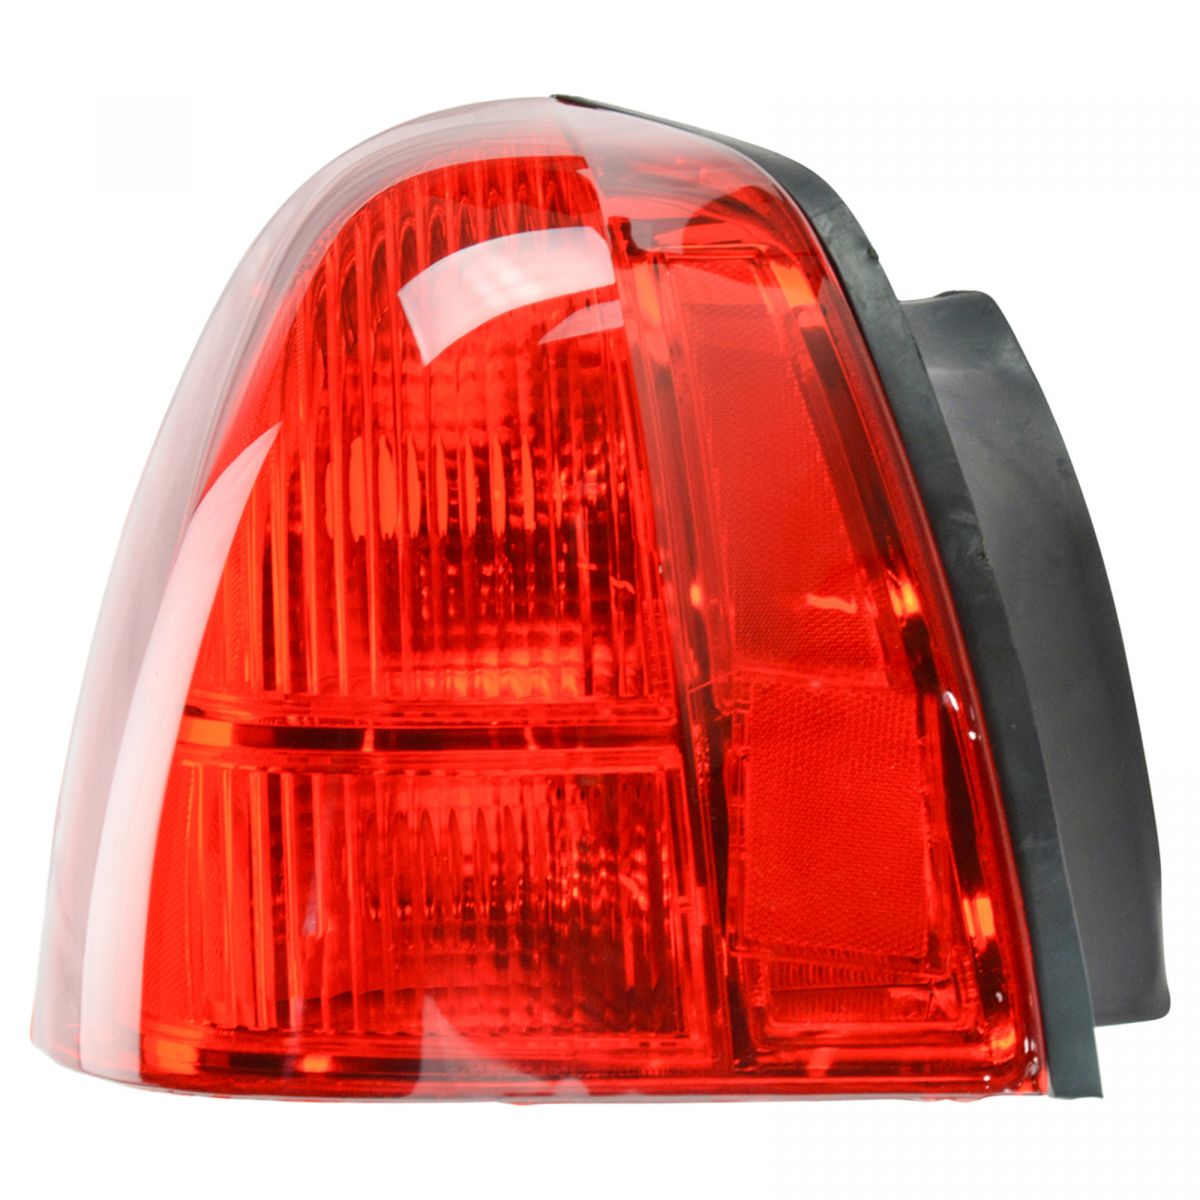 hight resolution of taillight taillamp brake light lamp left driver side rear for 03 11 town car